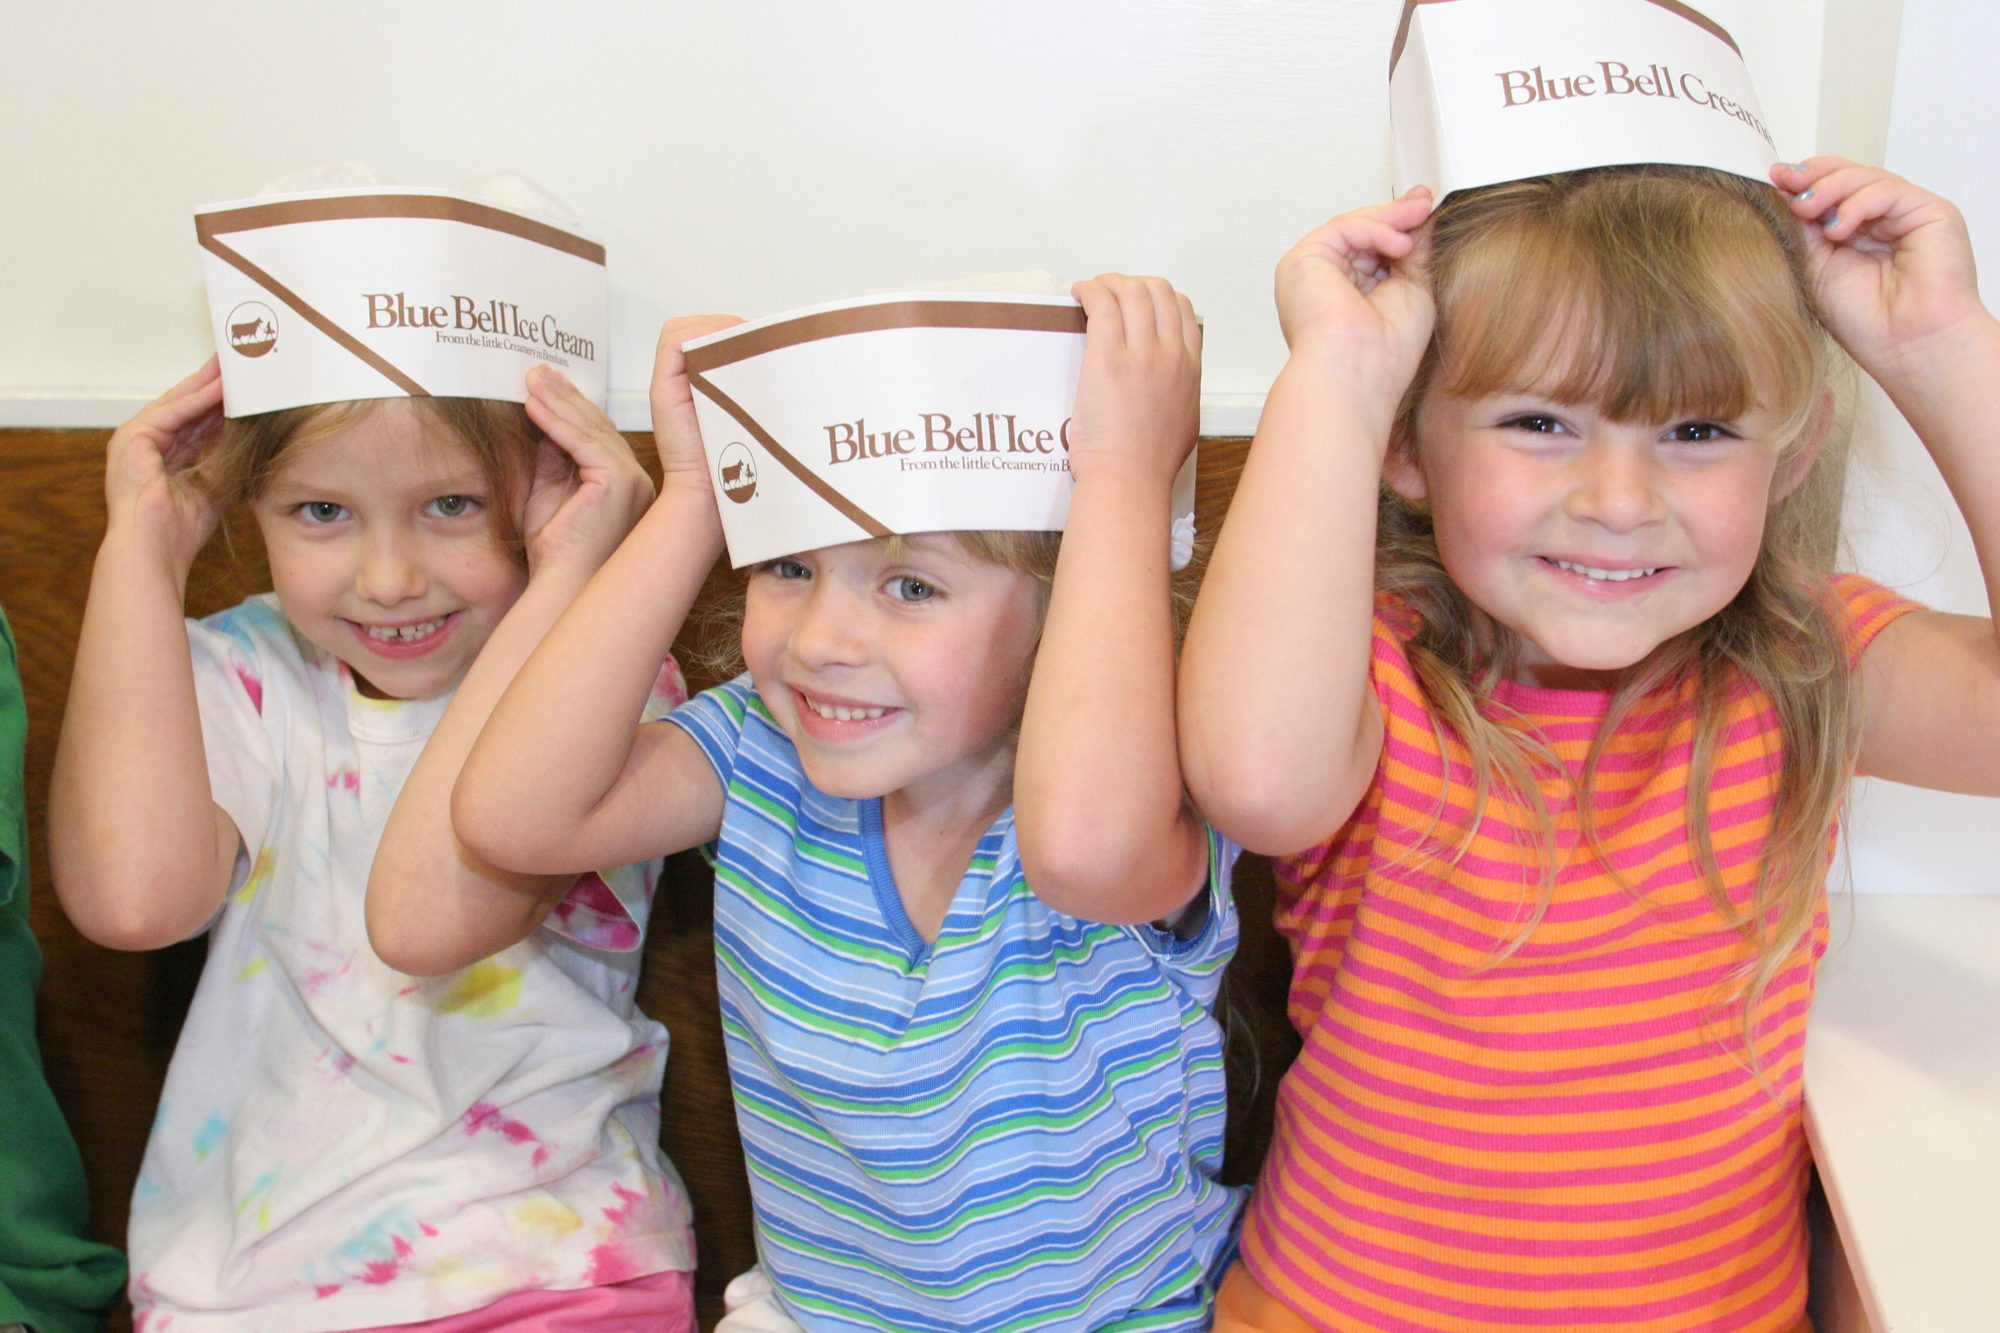 Why Southerners Love Blue Bell Ice Cream